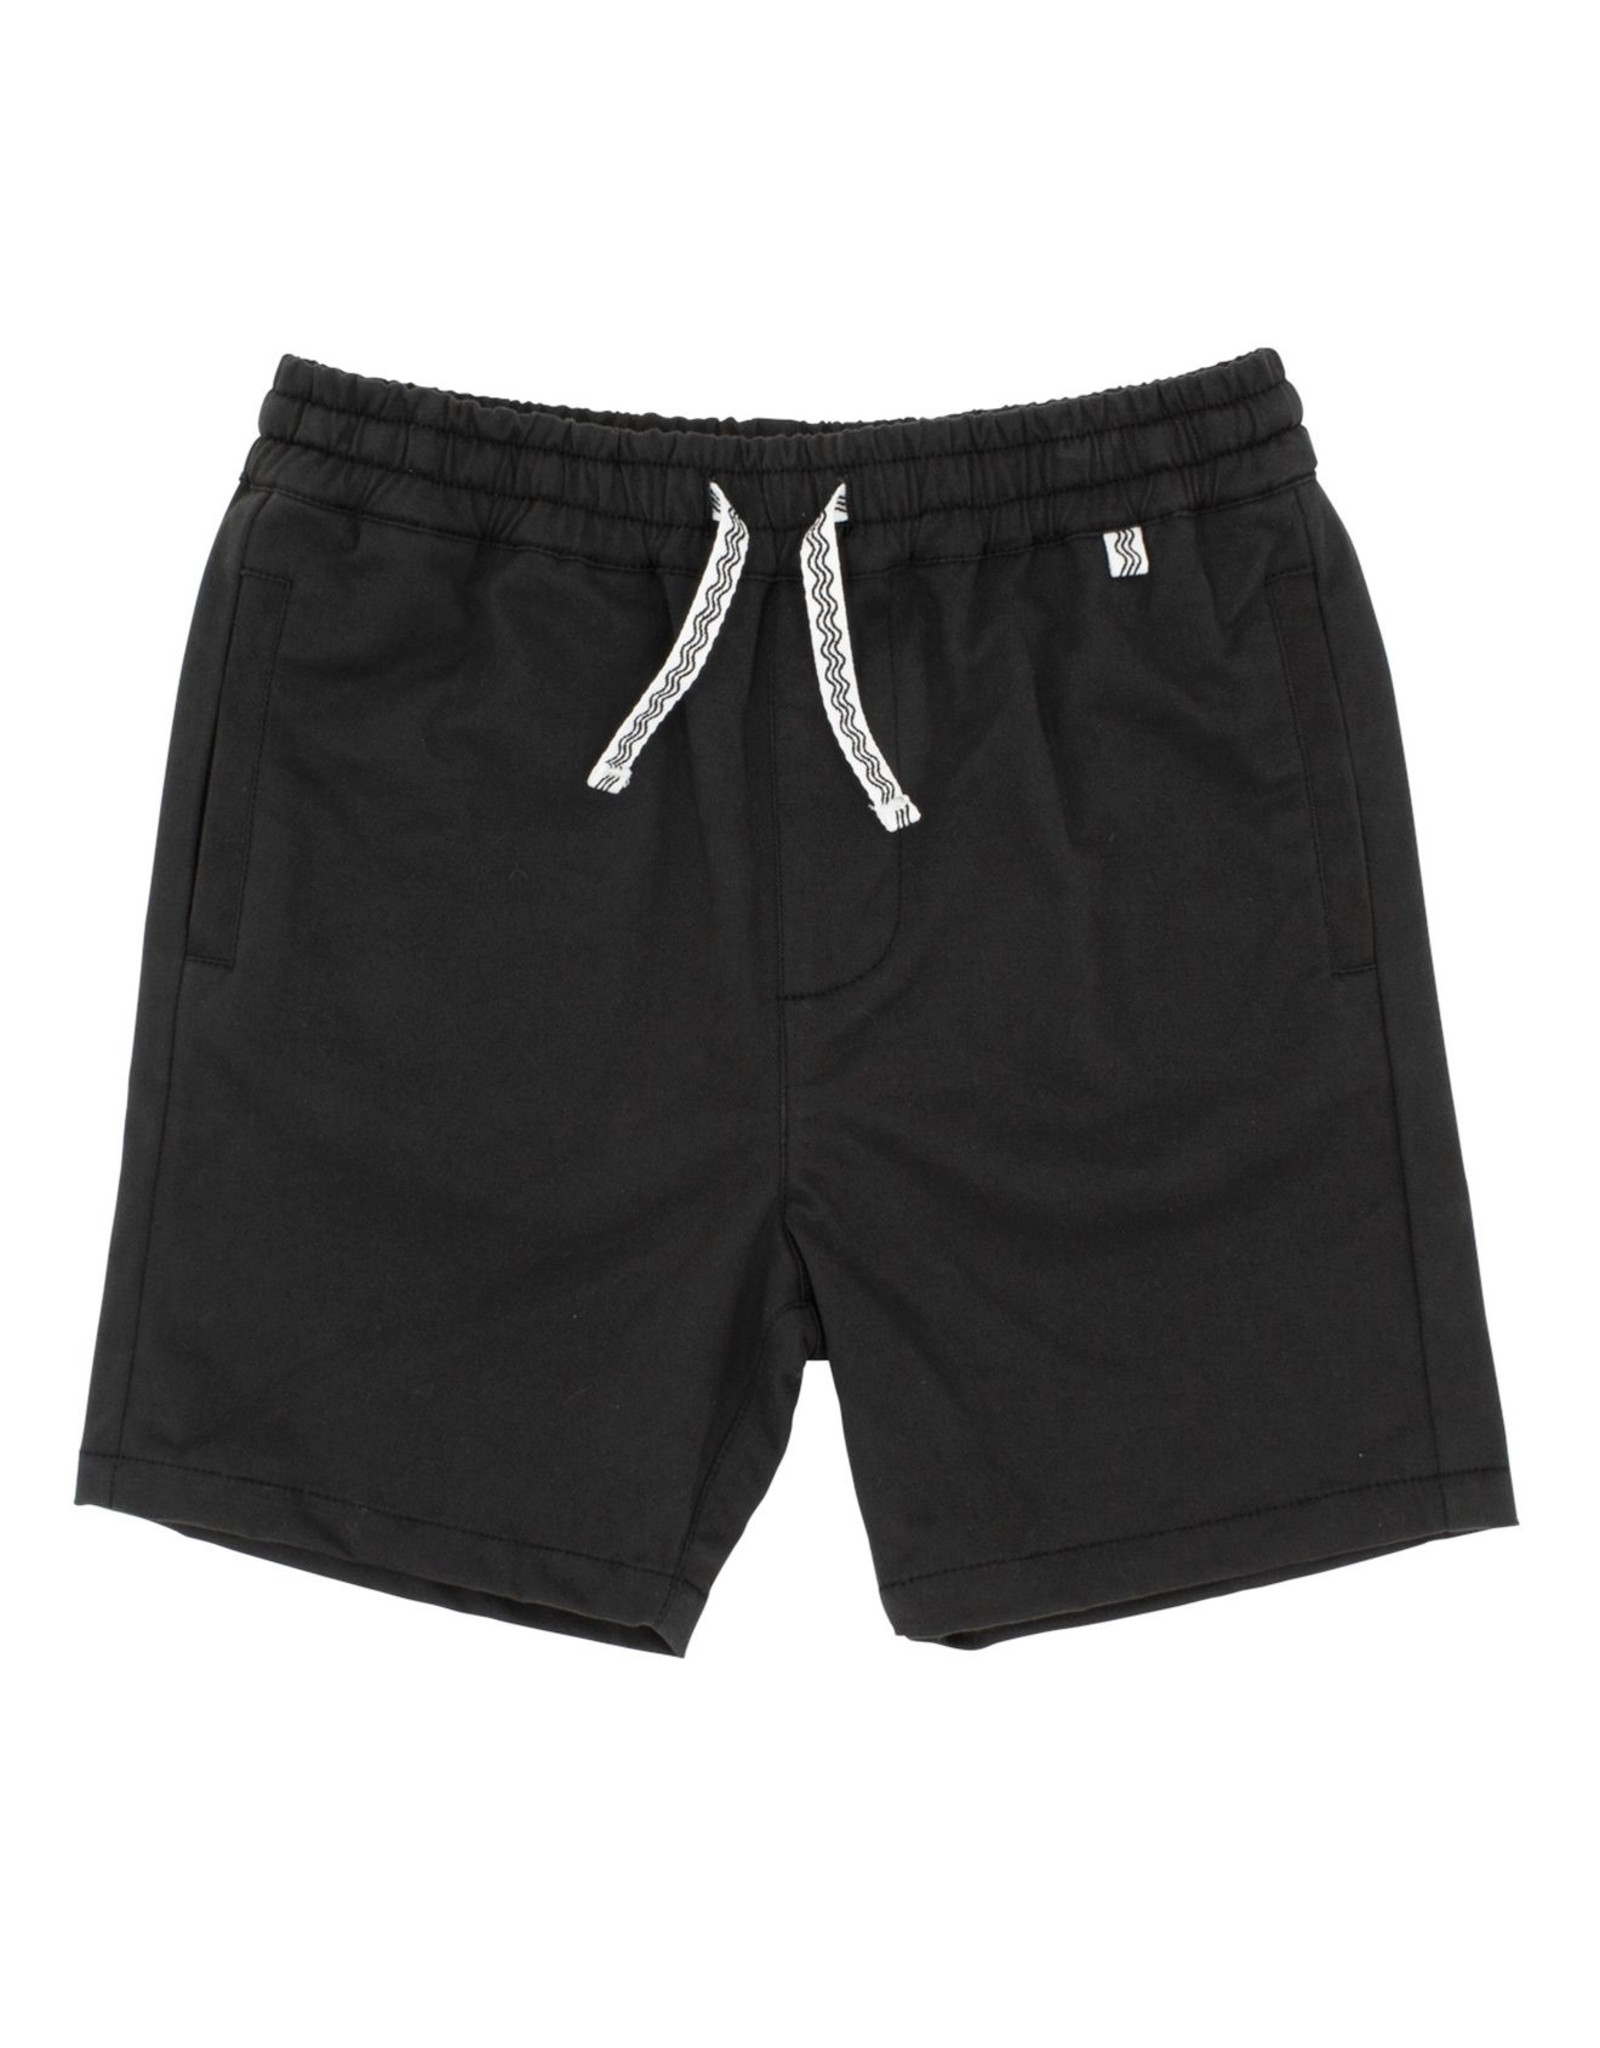 Feather 4 Arrow line up short- charcoal